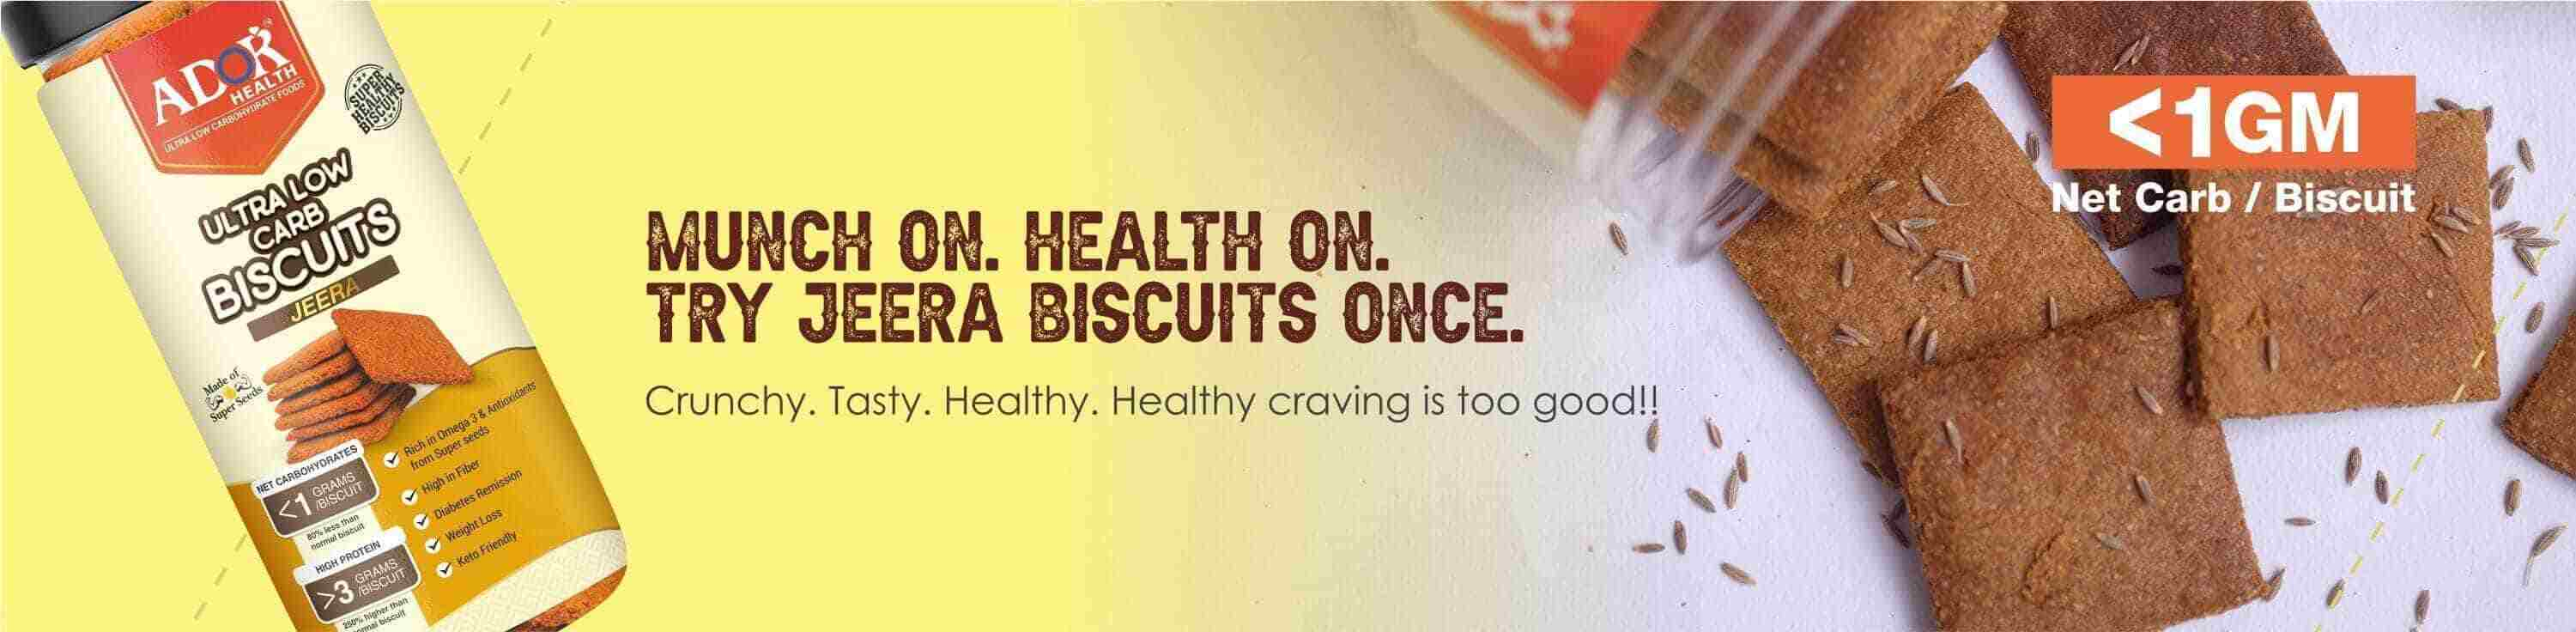 Ultra Low Carb Biscuits Jeera Flavour